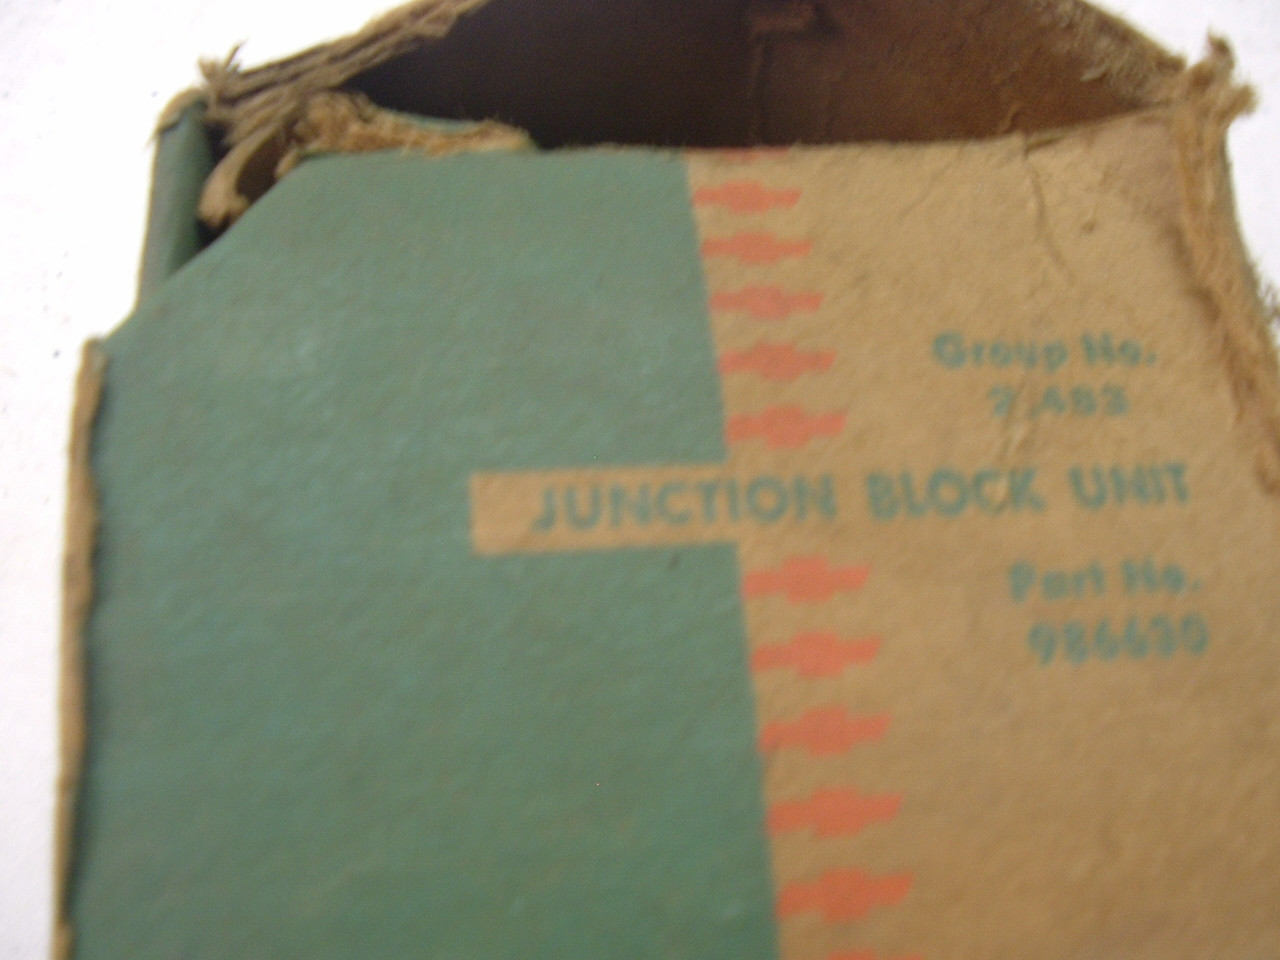 1953 1954 Chevrolet auxillary junction block unit 986630 (a 986630)